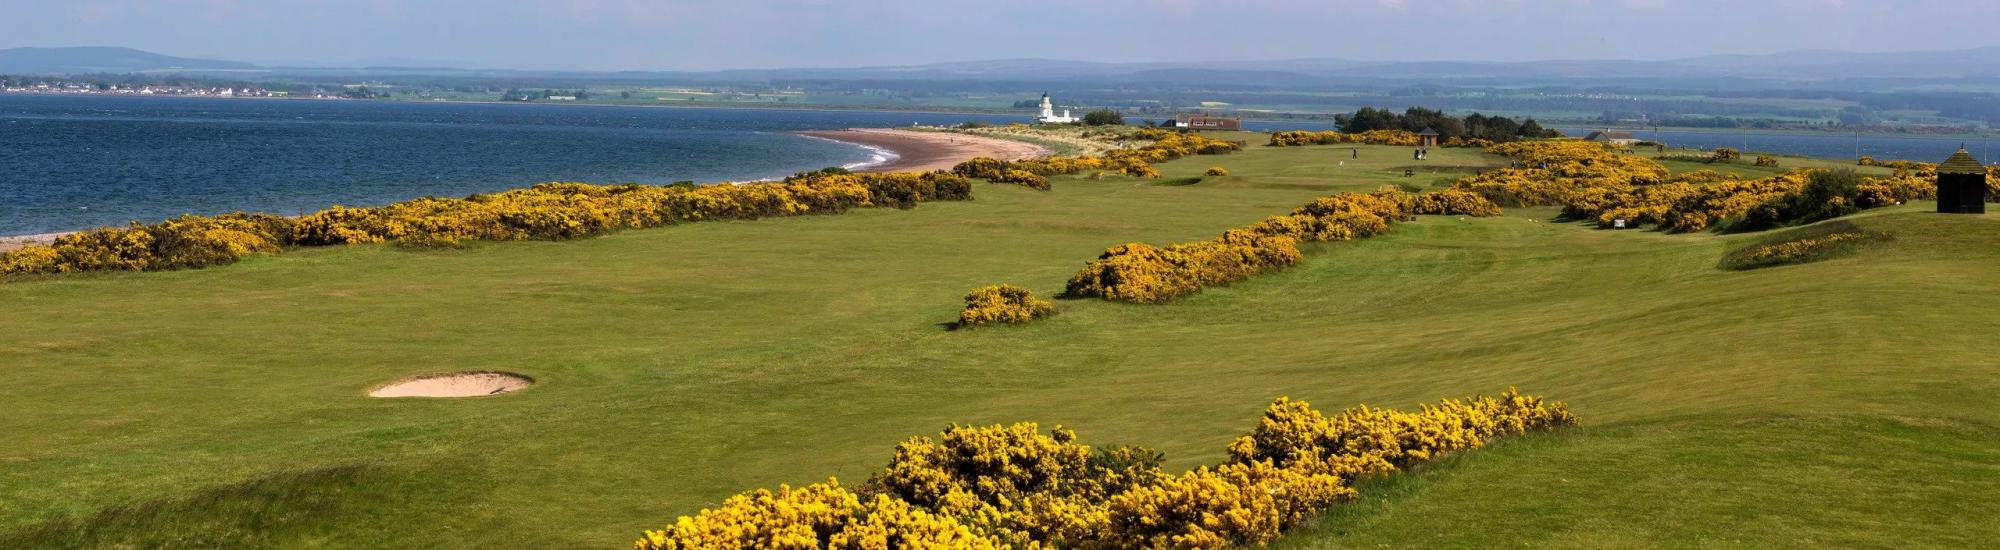 The Fortrose  Rosemarkie Golf Club's picturesque golf course situated in impressive Scotland.